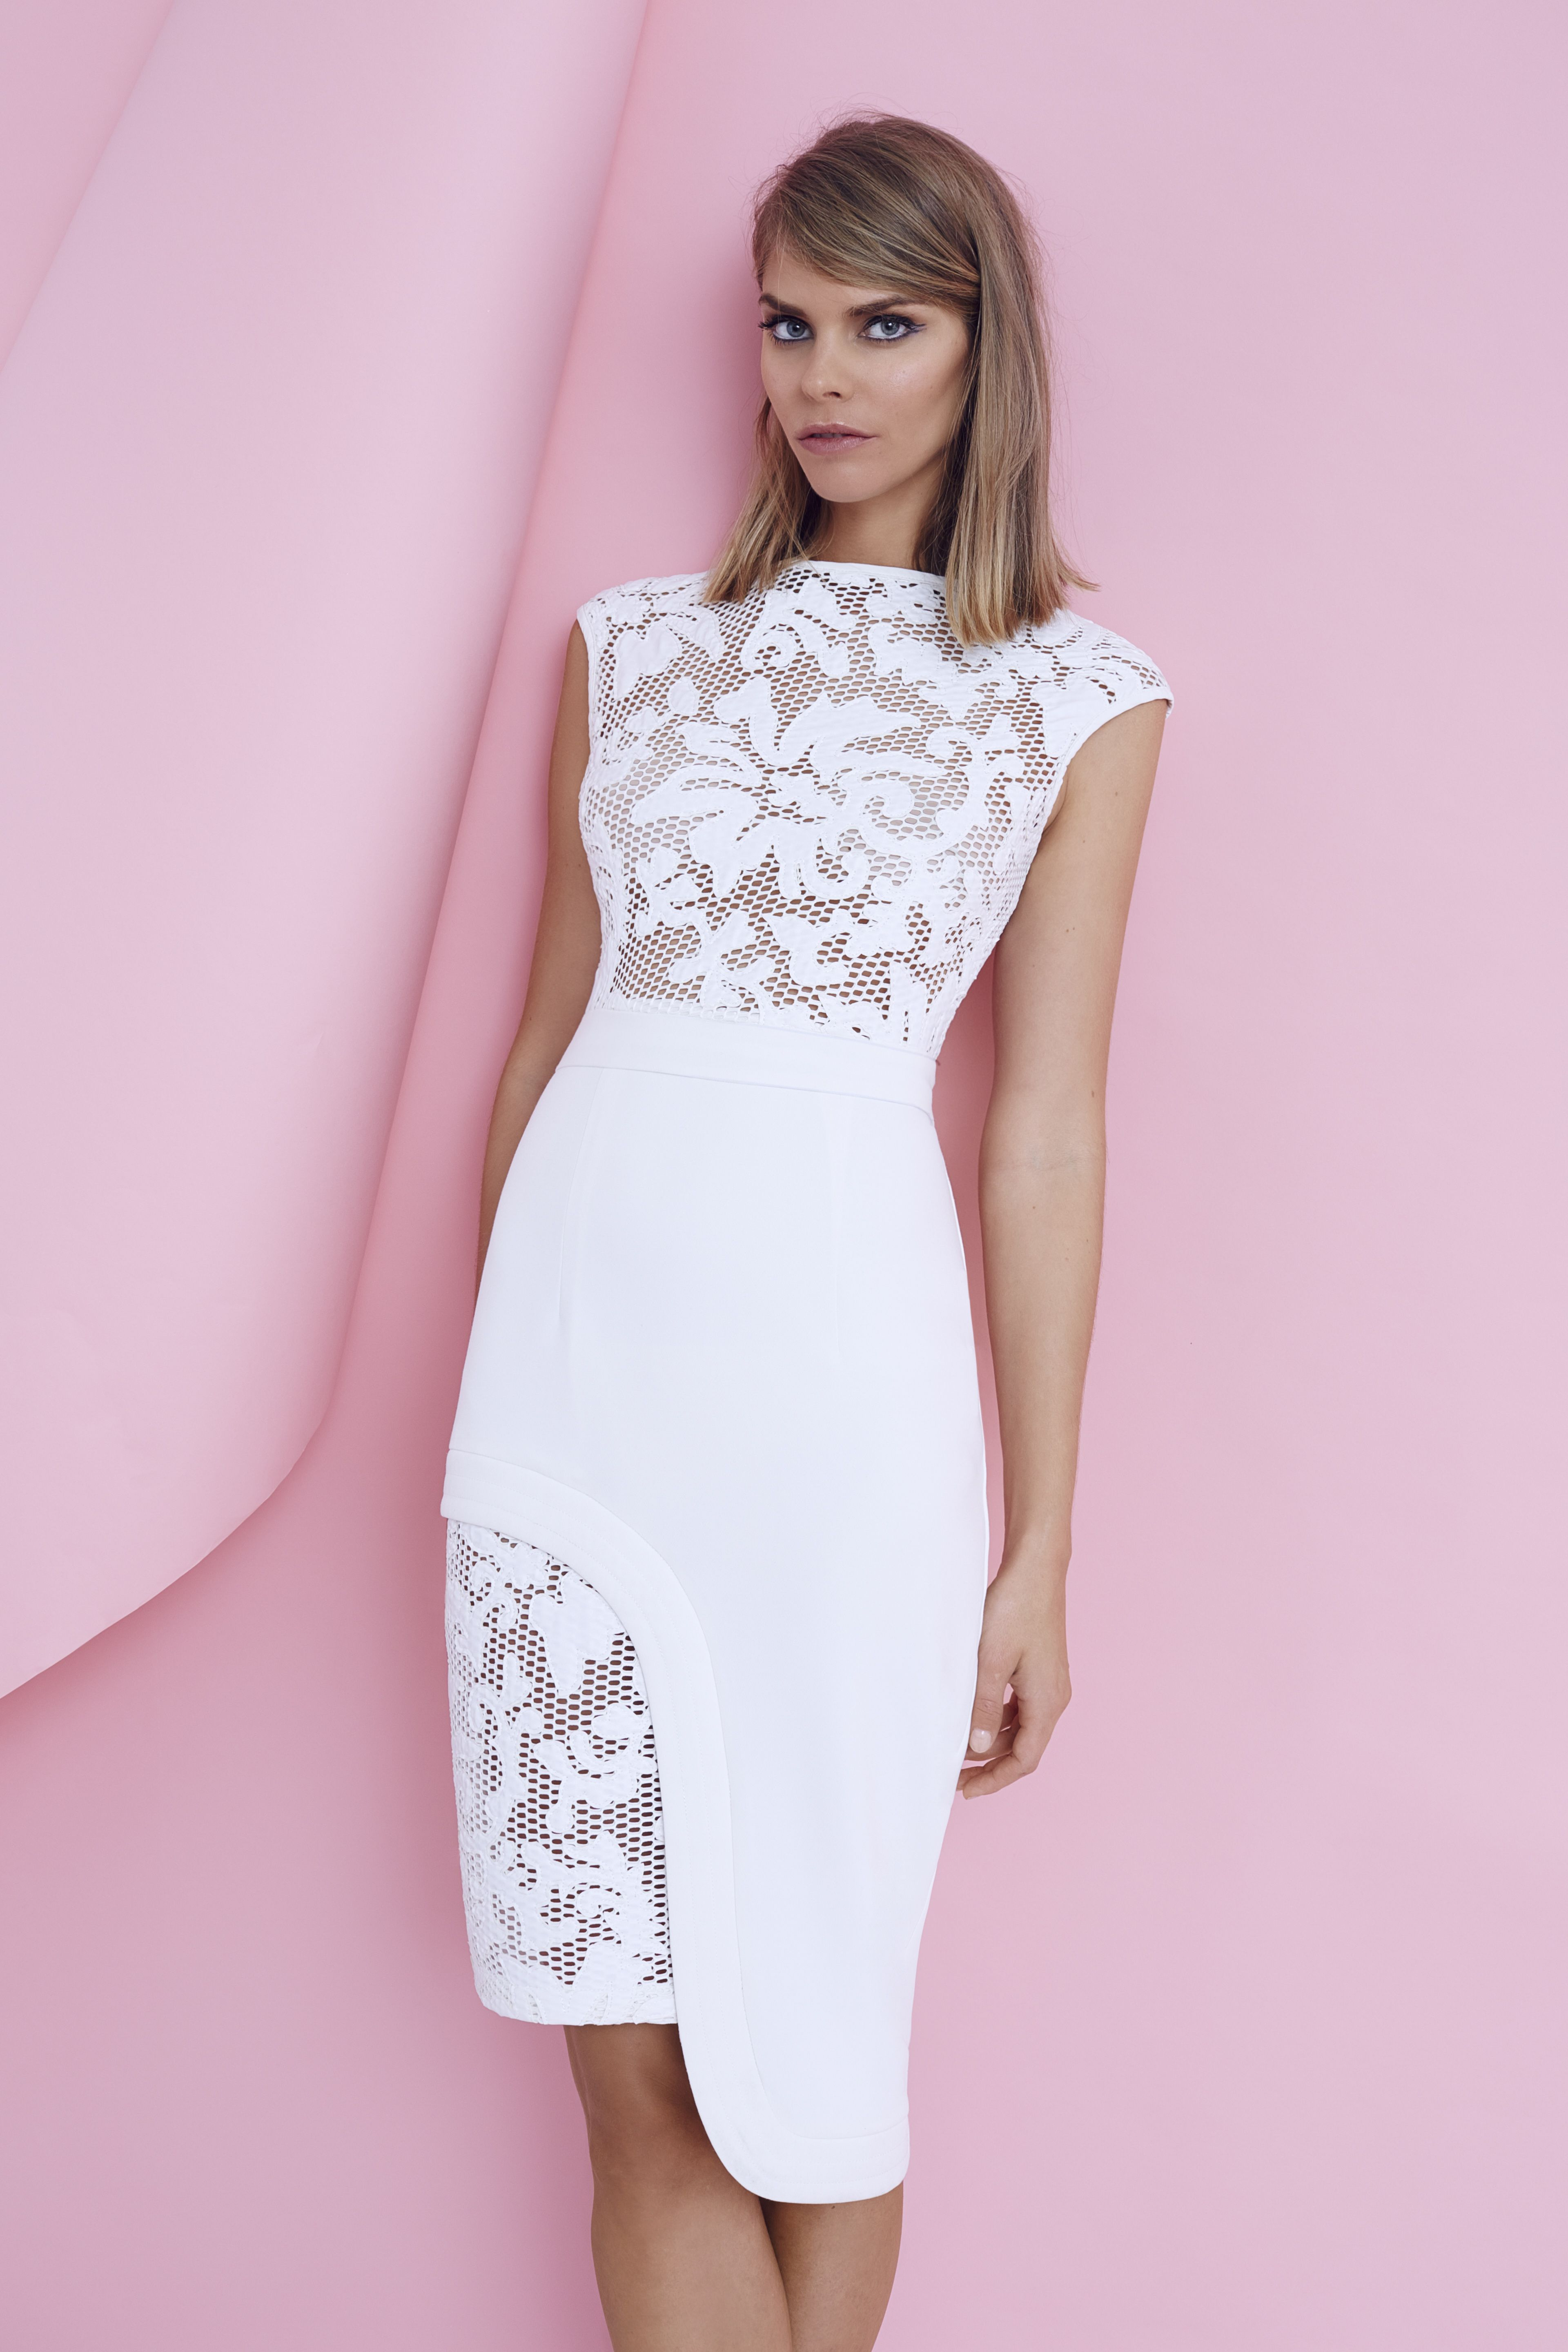 SHEIKE Heidi lace Dress (available in Ivory) $159.95 | Elegant ...